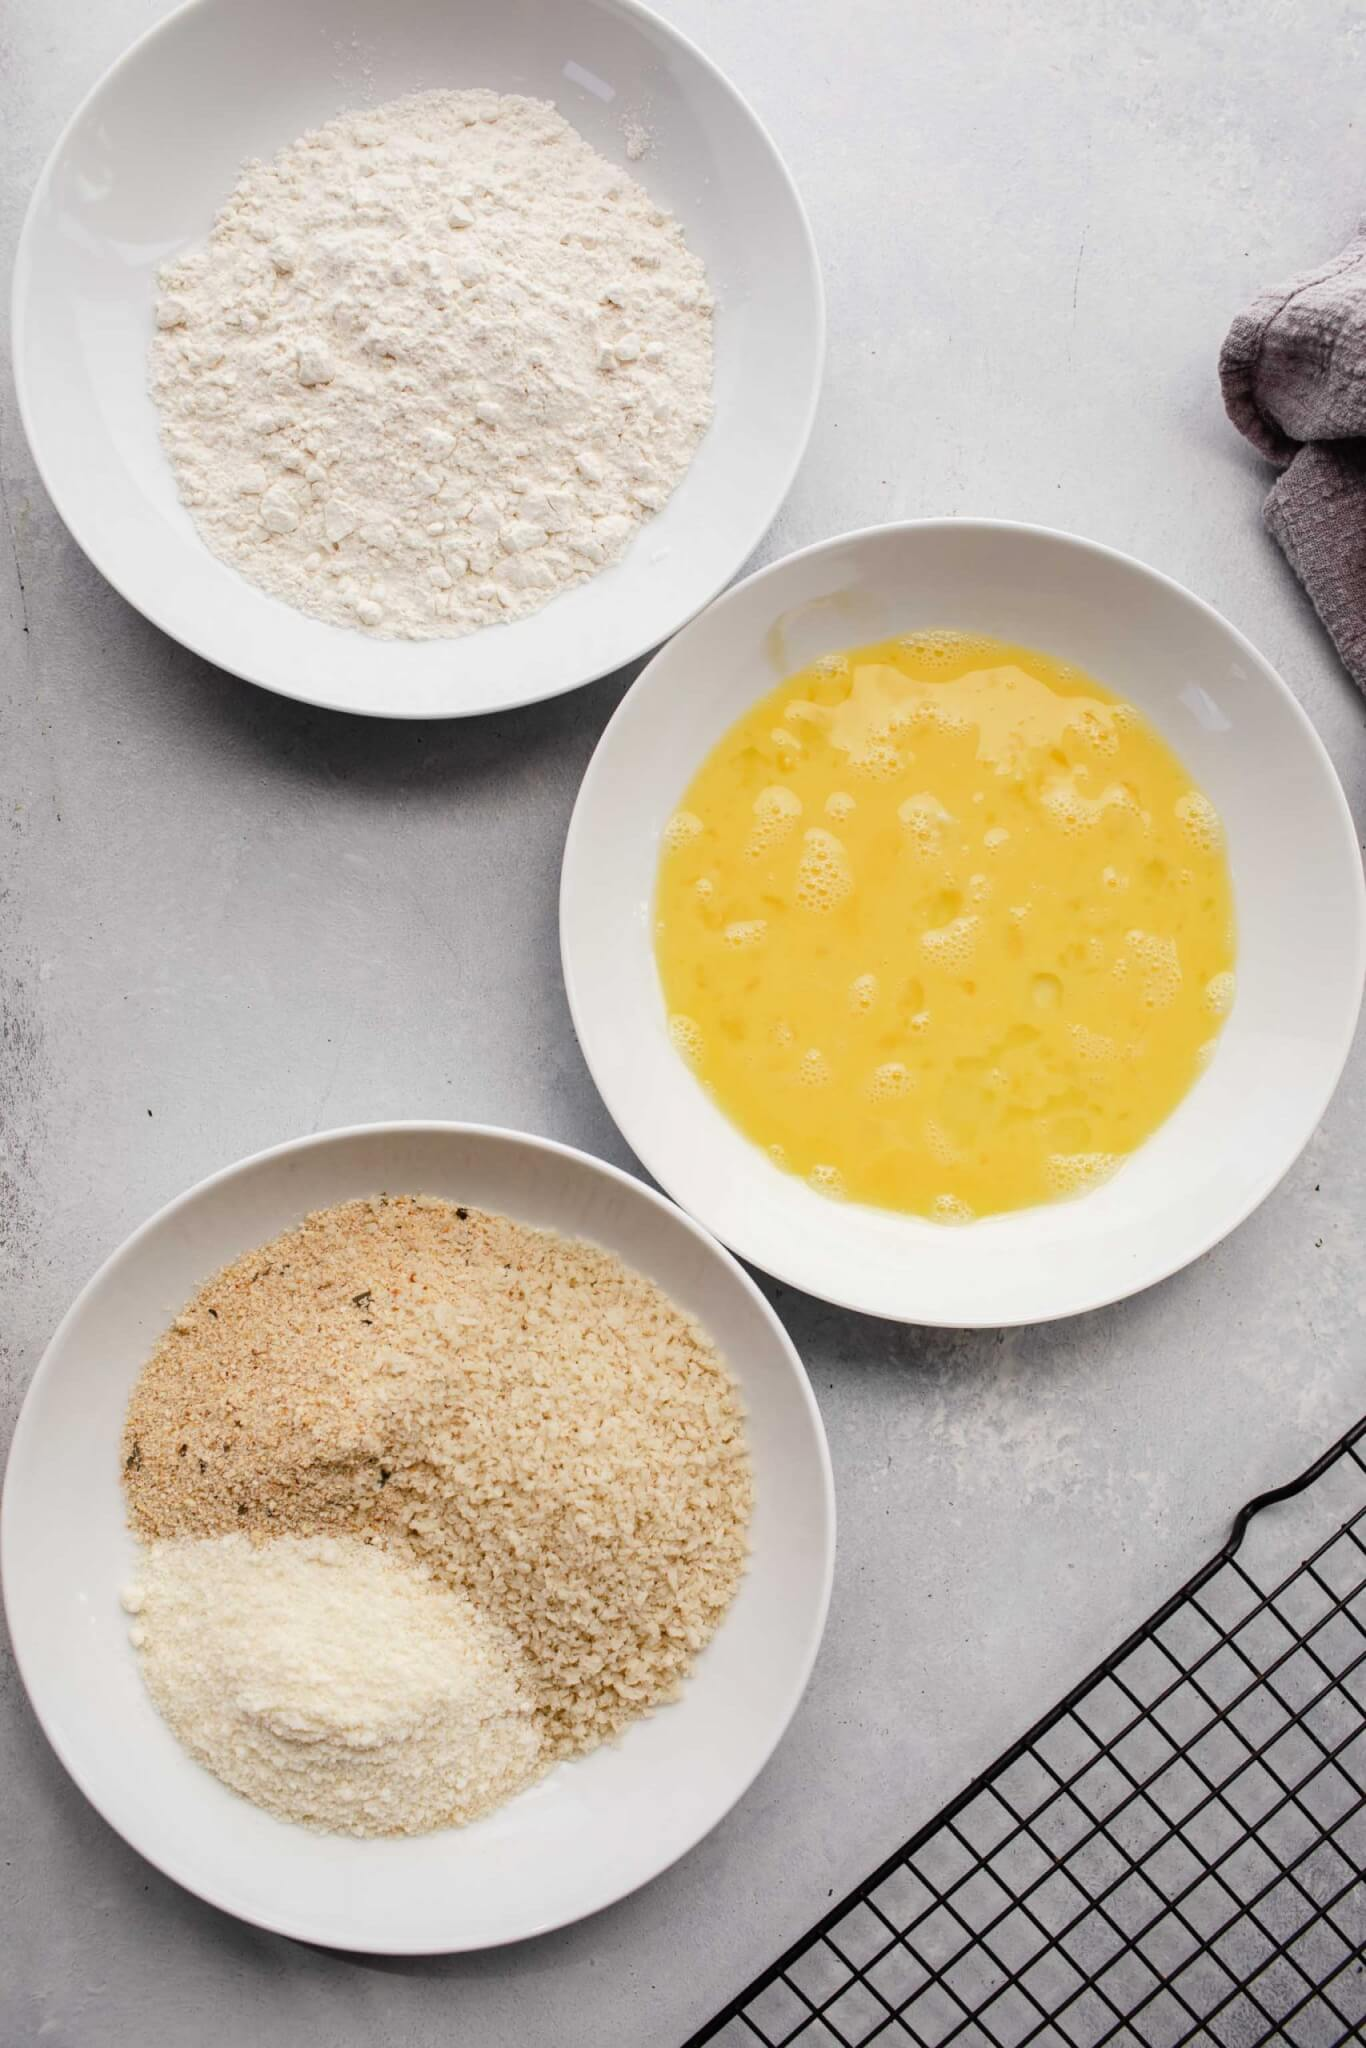 Three bowls with flour, eggs and breadcrumbs.